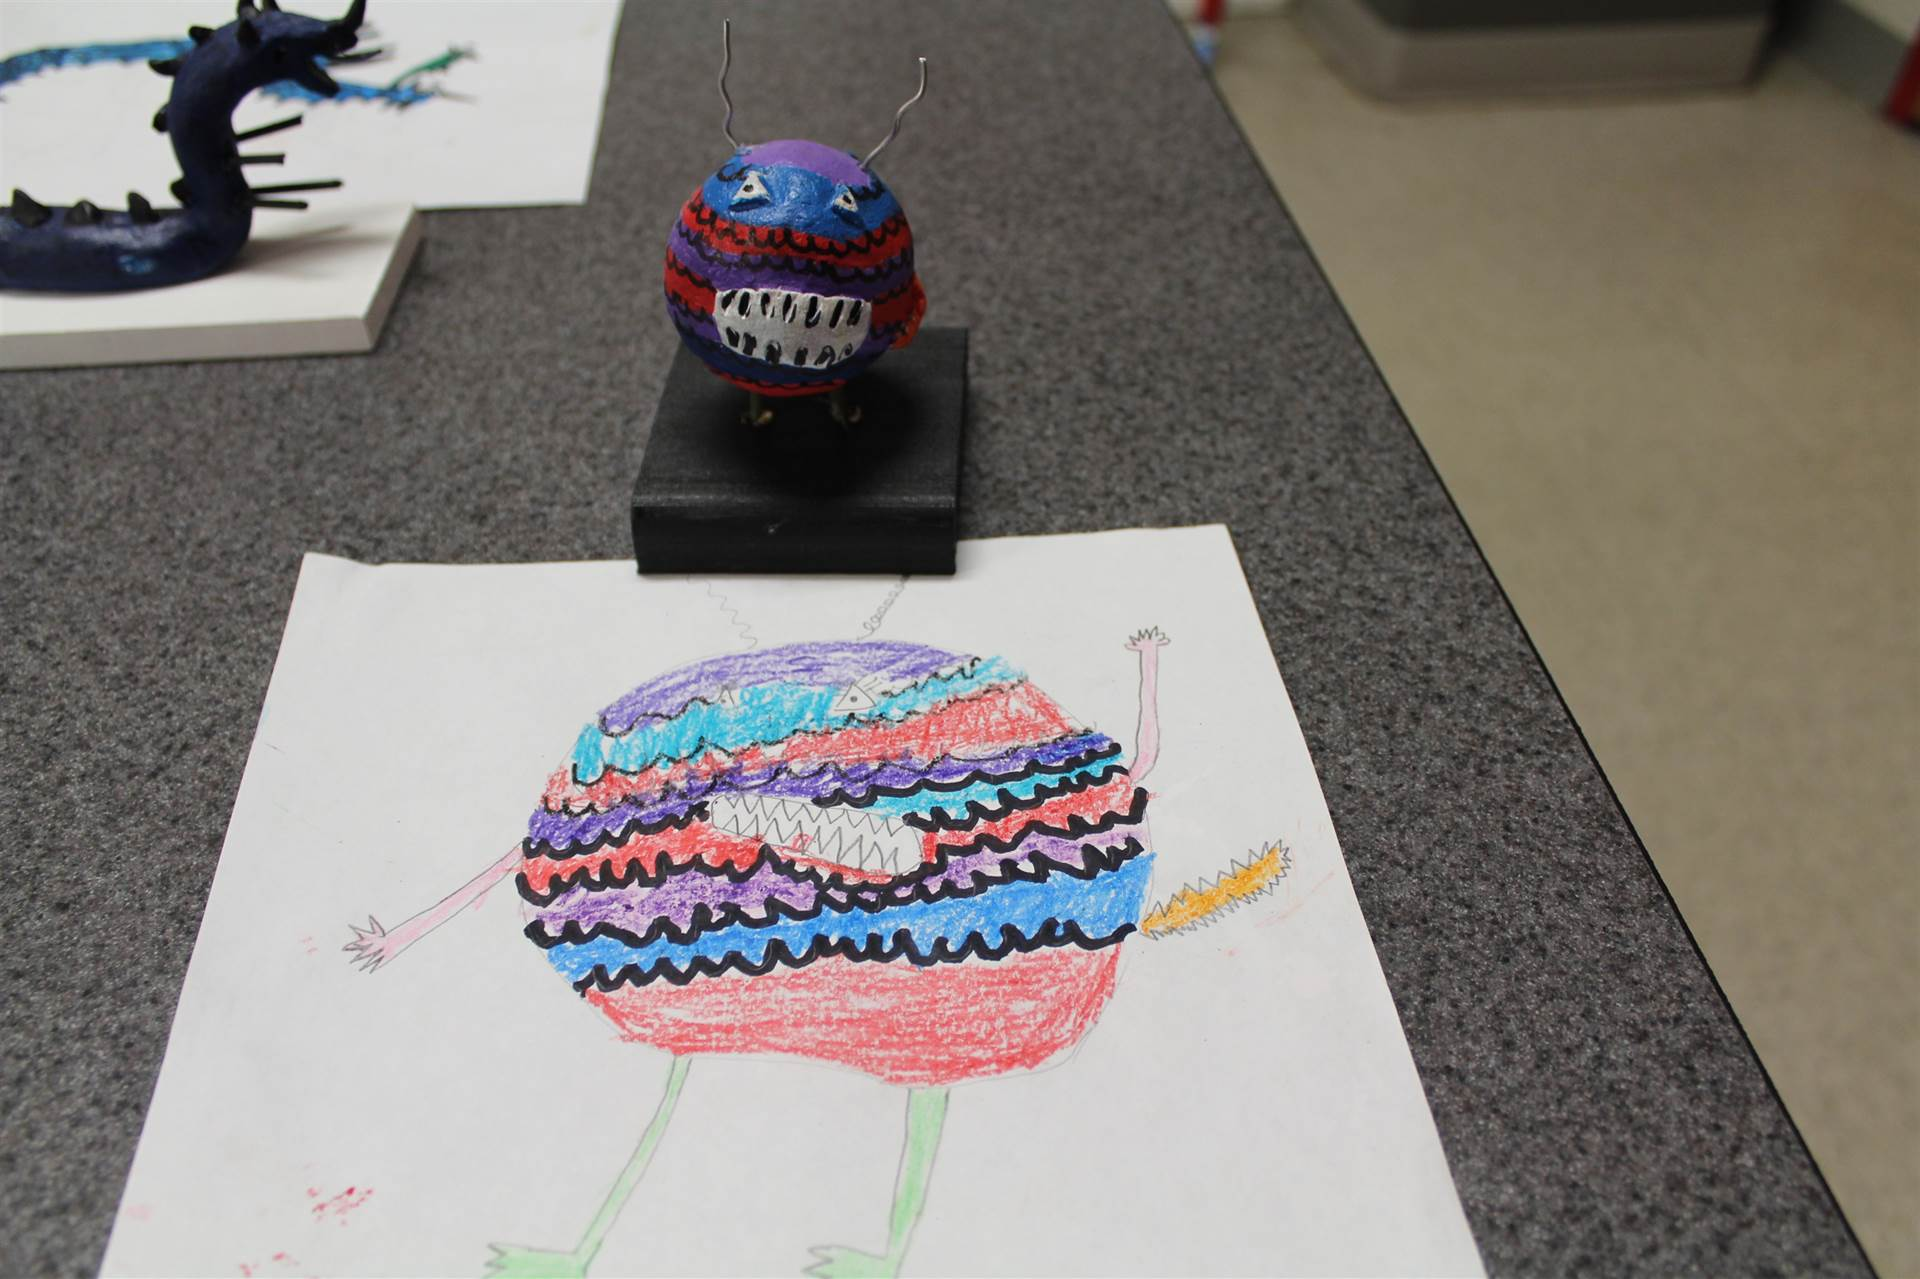 monster 3 d sculpture next to drawn picture 40